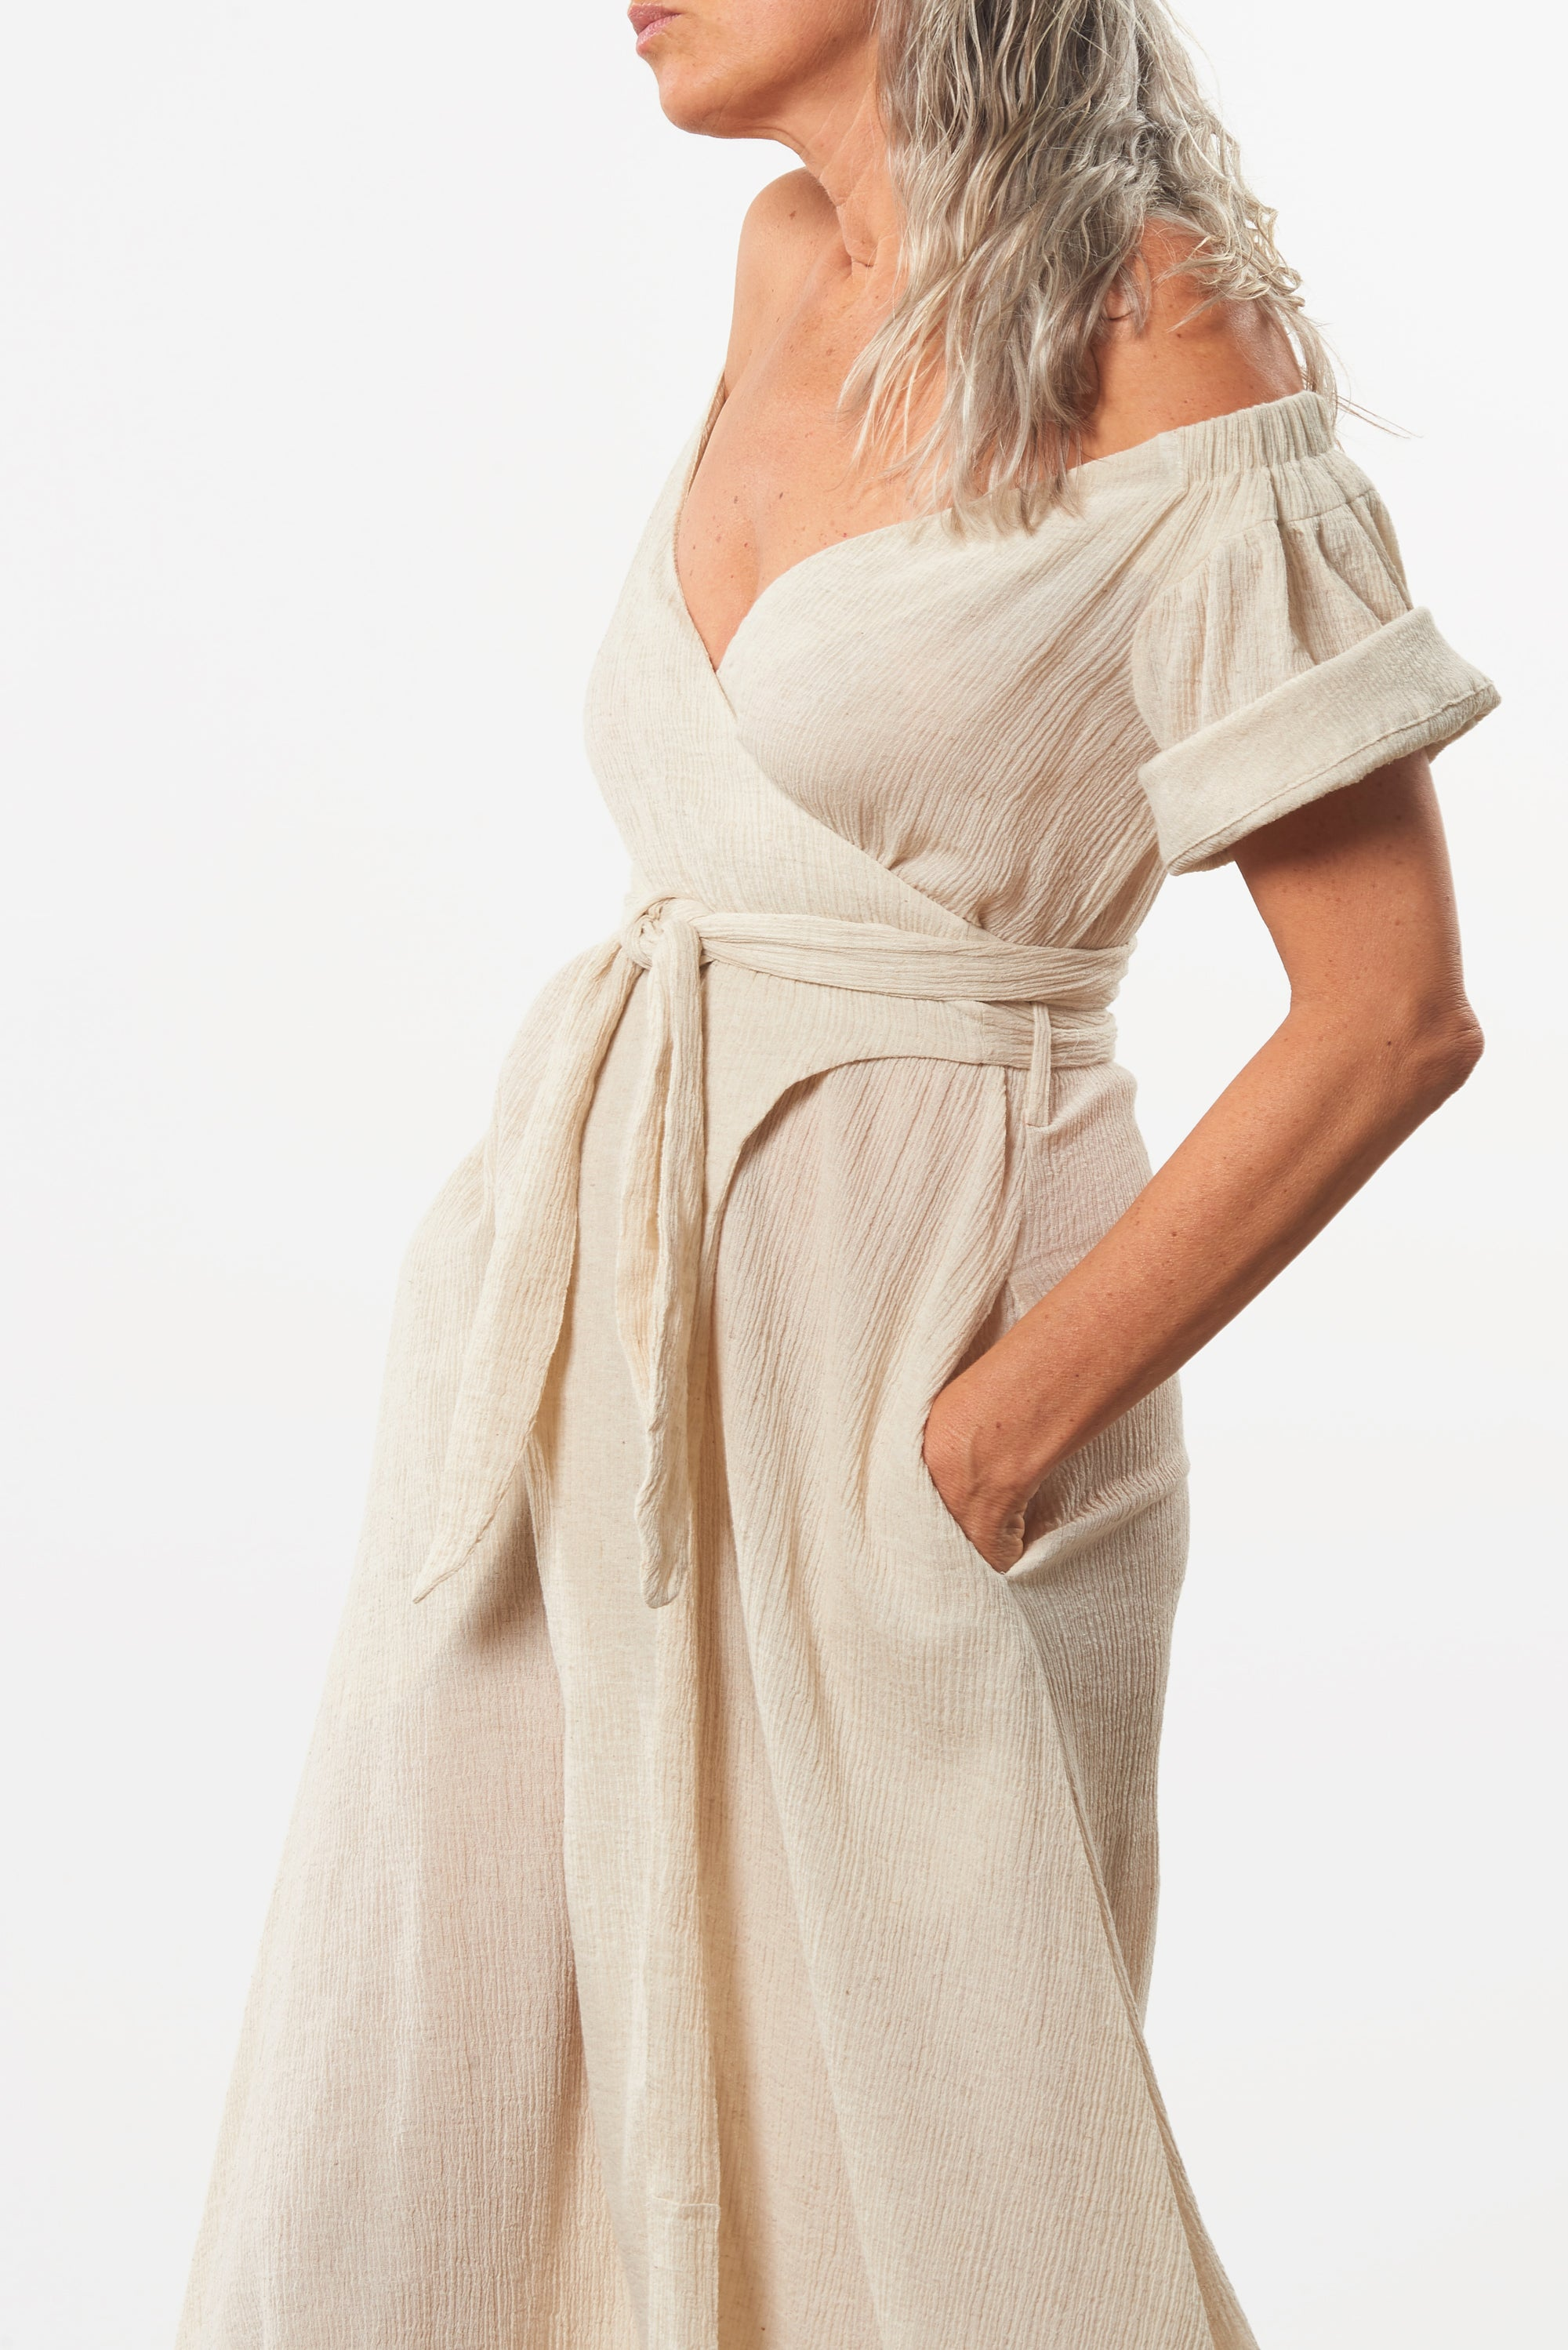 Mara Hoffman Beige Adelina Cover Up Dress in organic cotton and linen (detail)